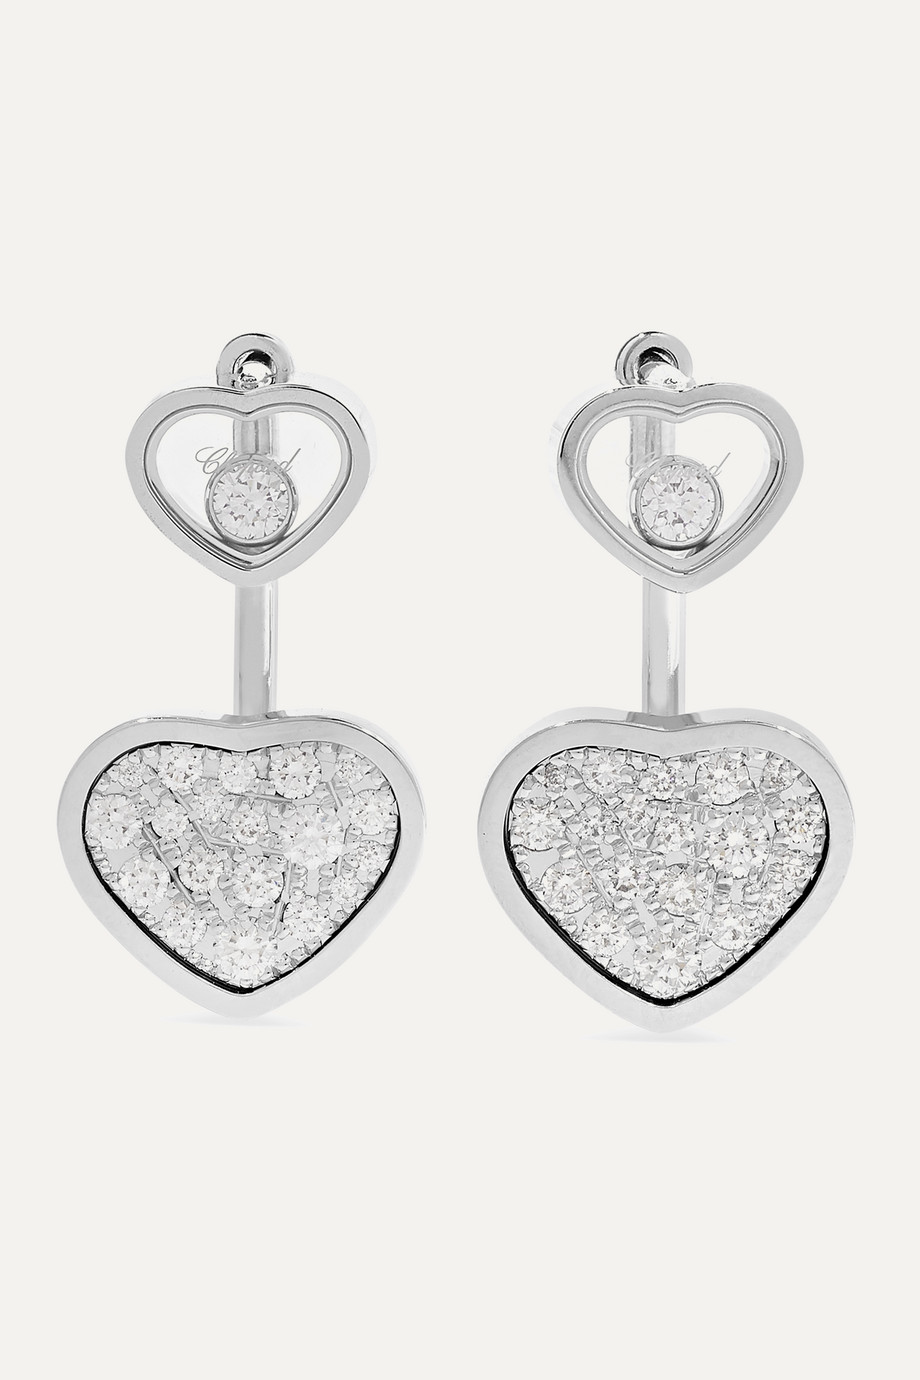 Chopard Boucles d'oreilles en or blanc 18 carats et diamants Happy Hearts